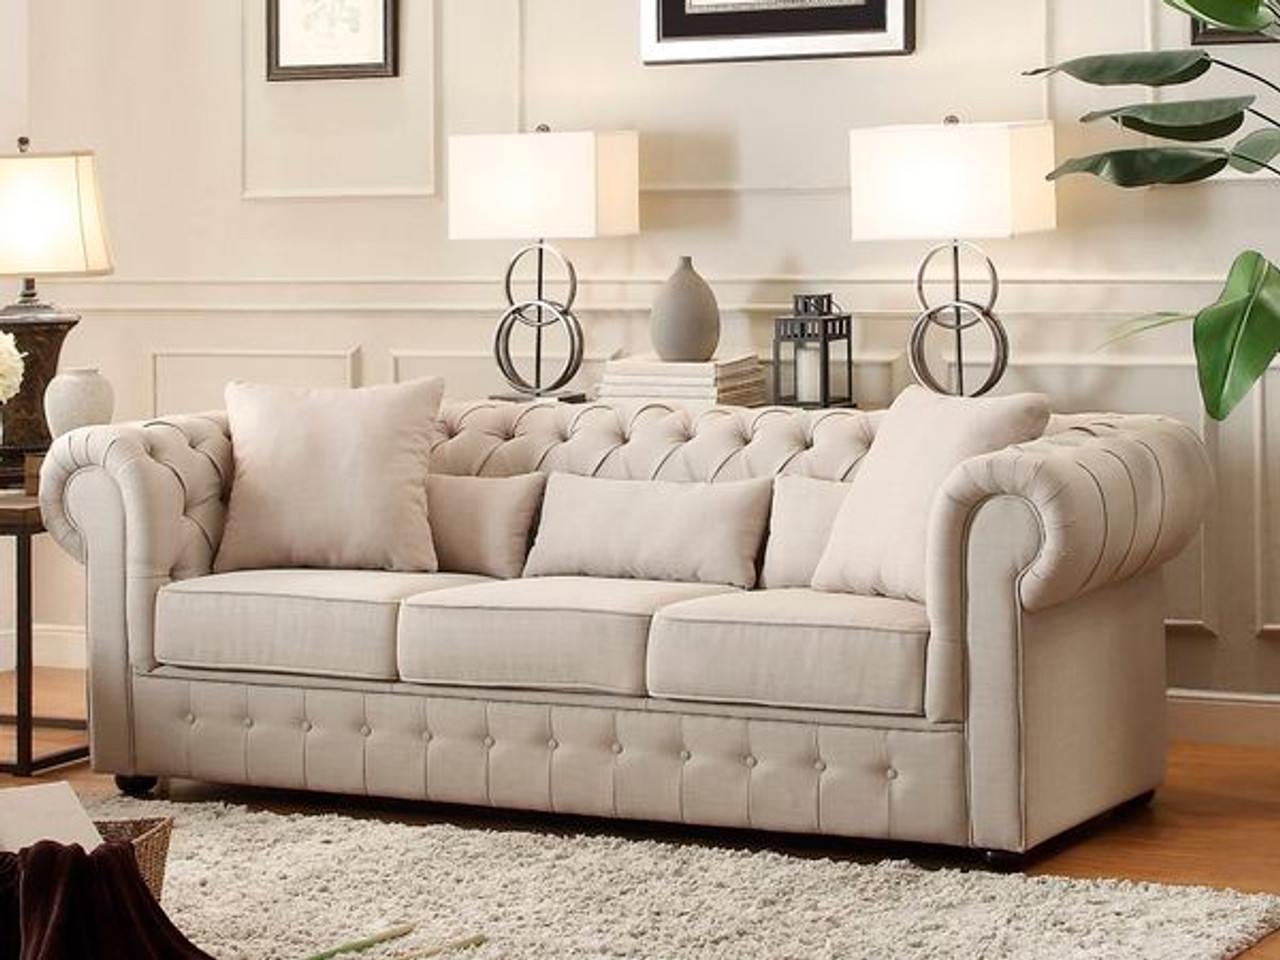 chesterfield sofa material living room furniture sleeper homelegance grand upholstered button tufted fabric 8427 3 in